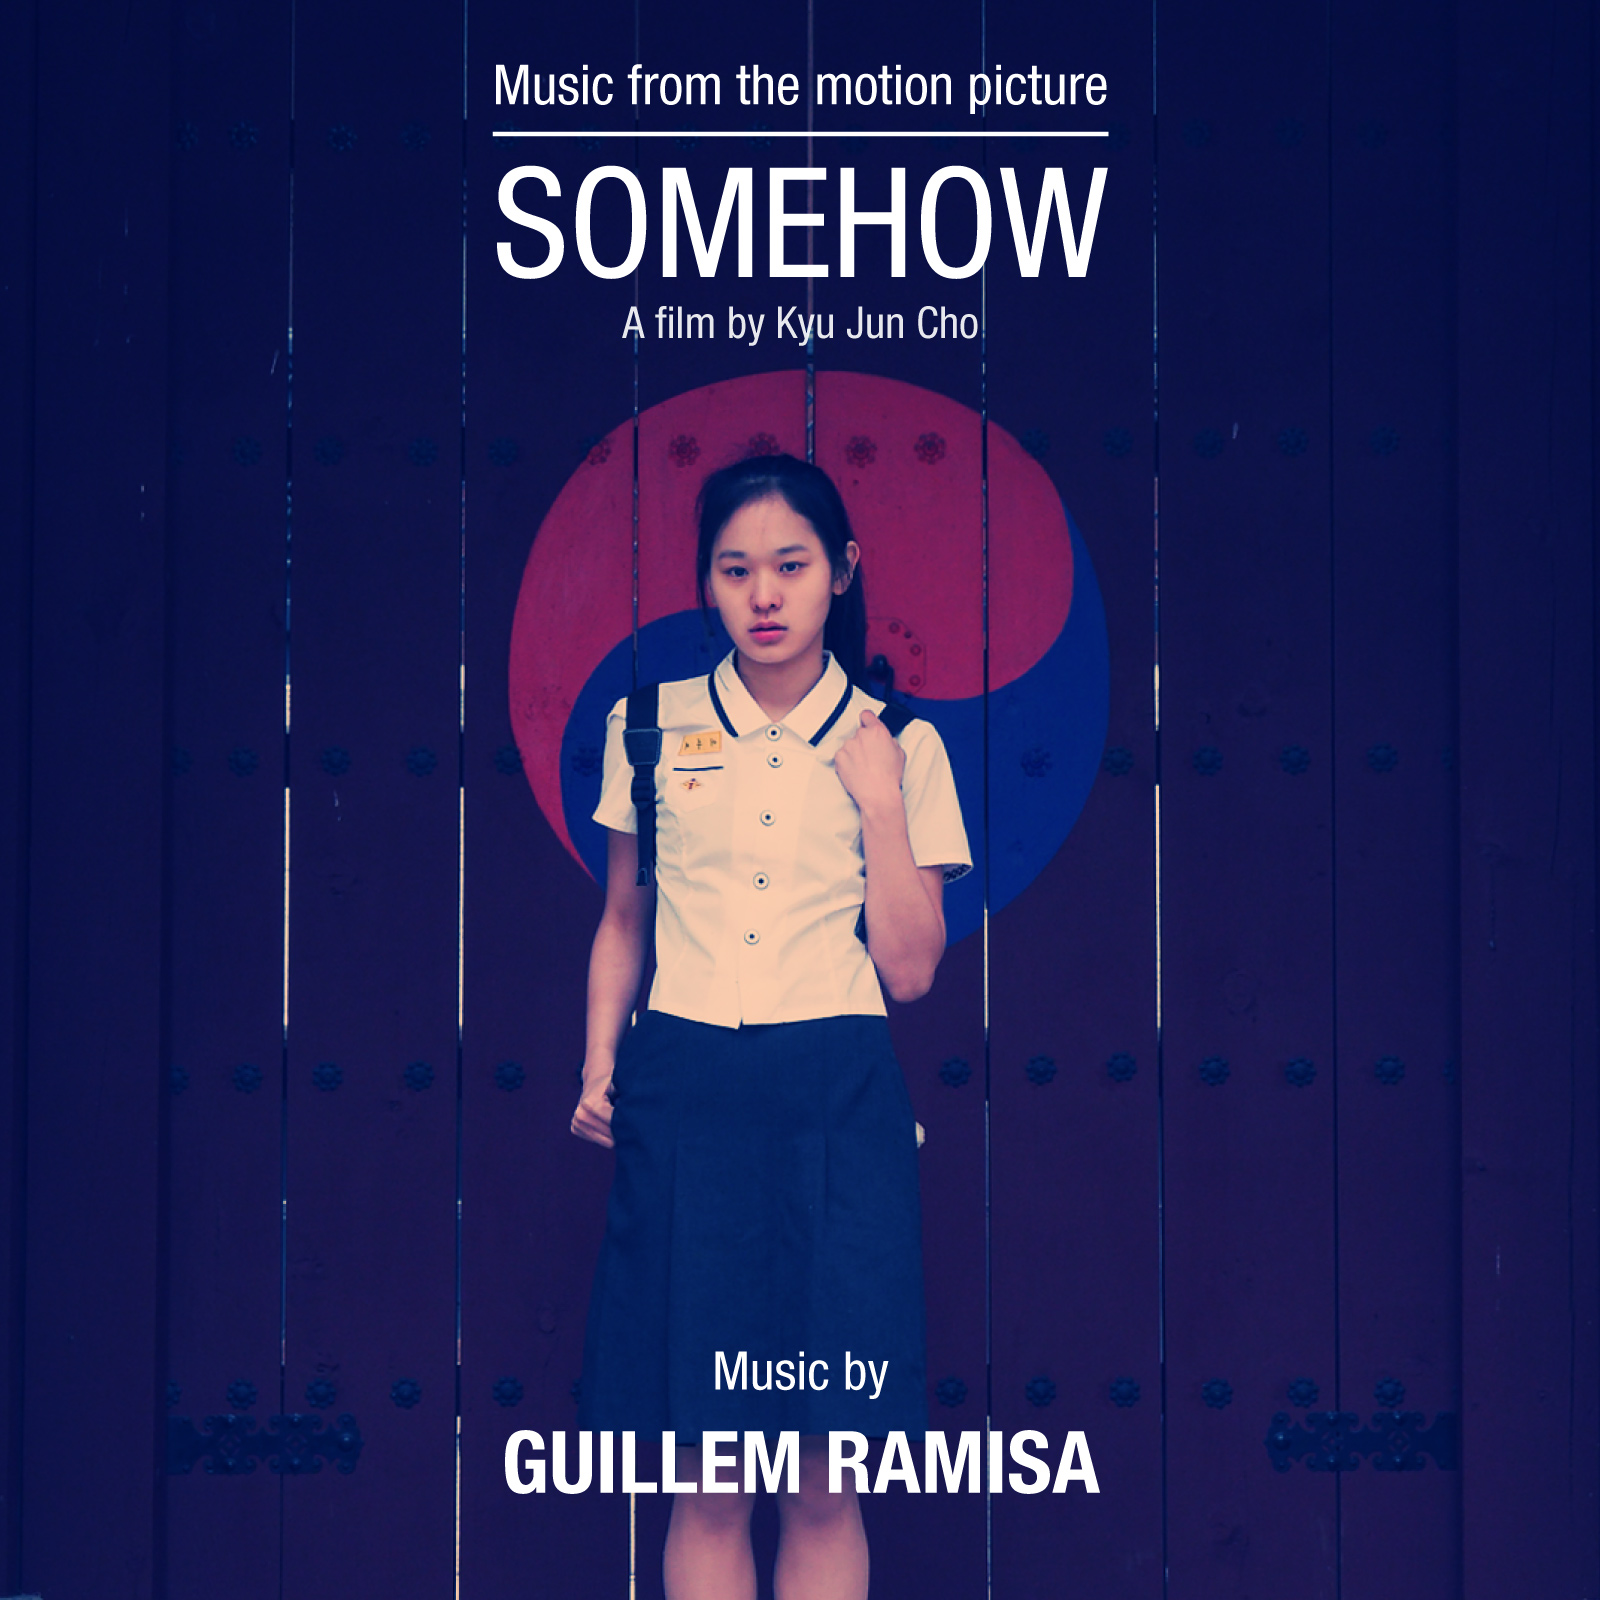 Somehow BSO Guillem Ramisa